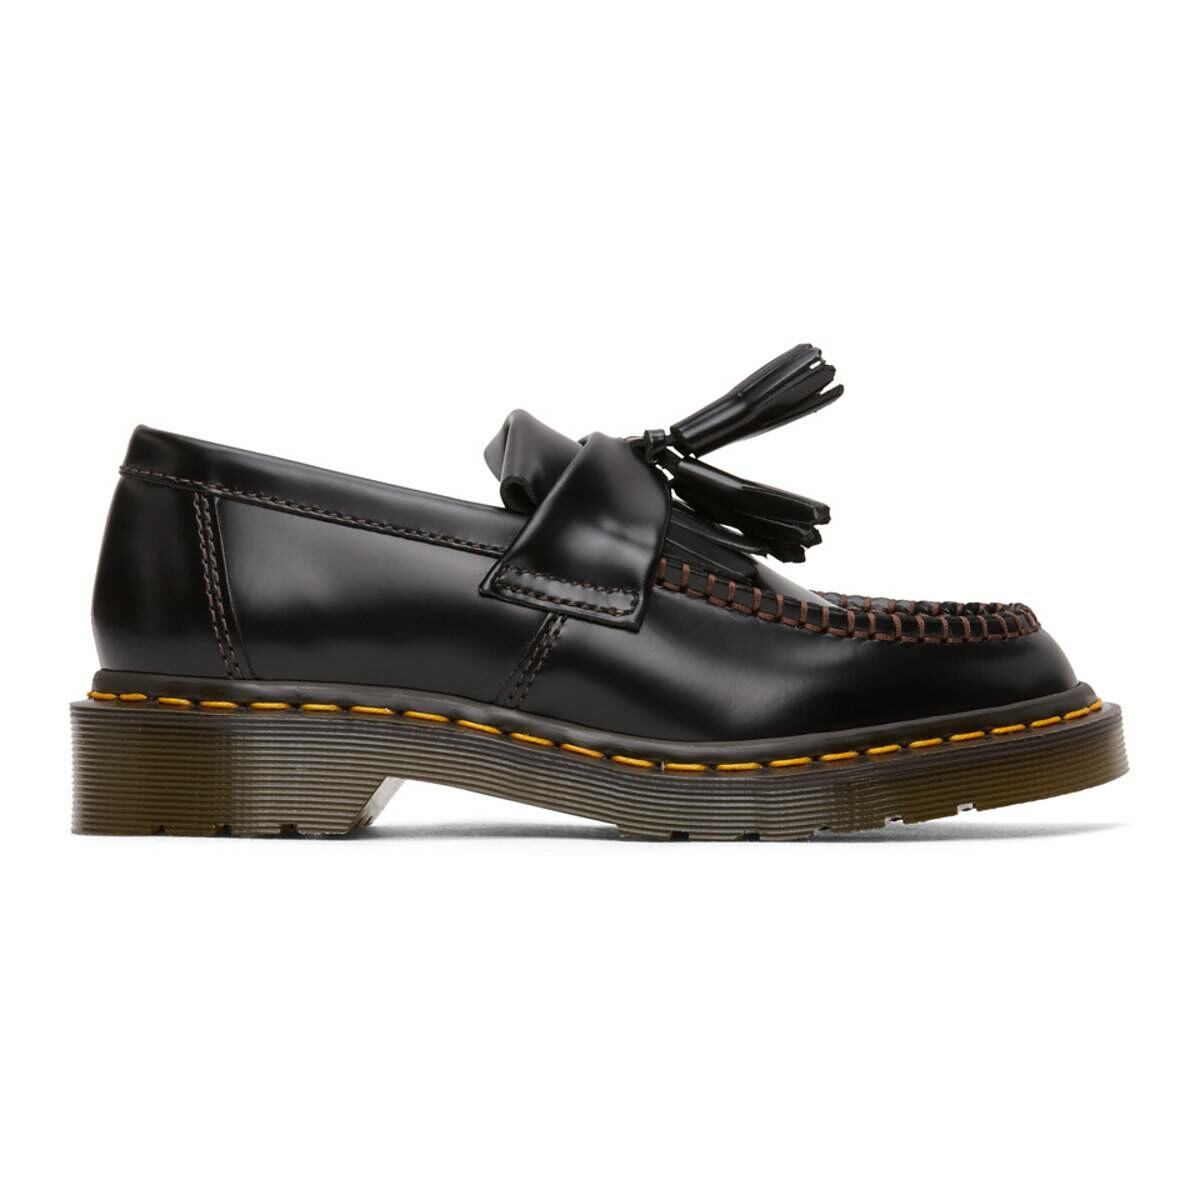 Comme des Garcons Comme des Garcons Black Dr. Martens Edition Made In England Adrian Loafers Ssense USA WOMEN Women SHOES Womens SLIPPERS